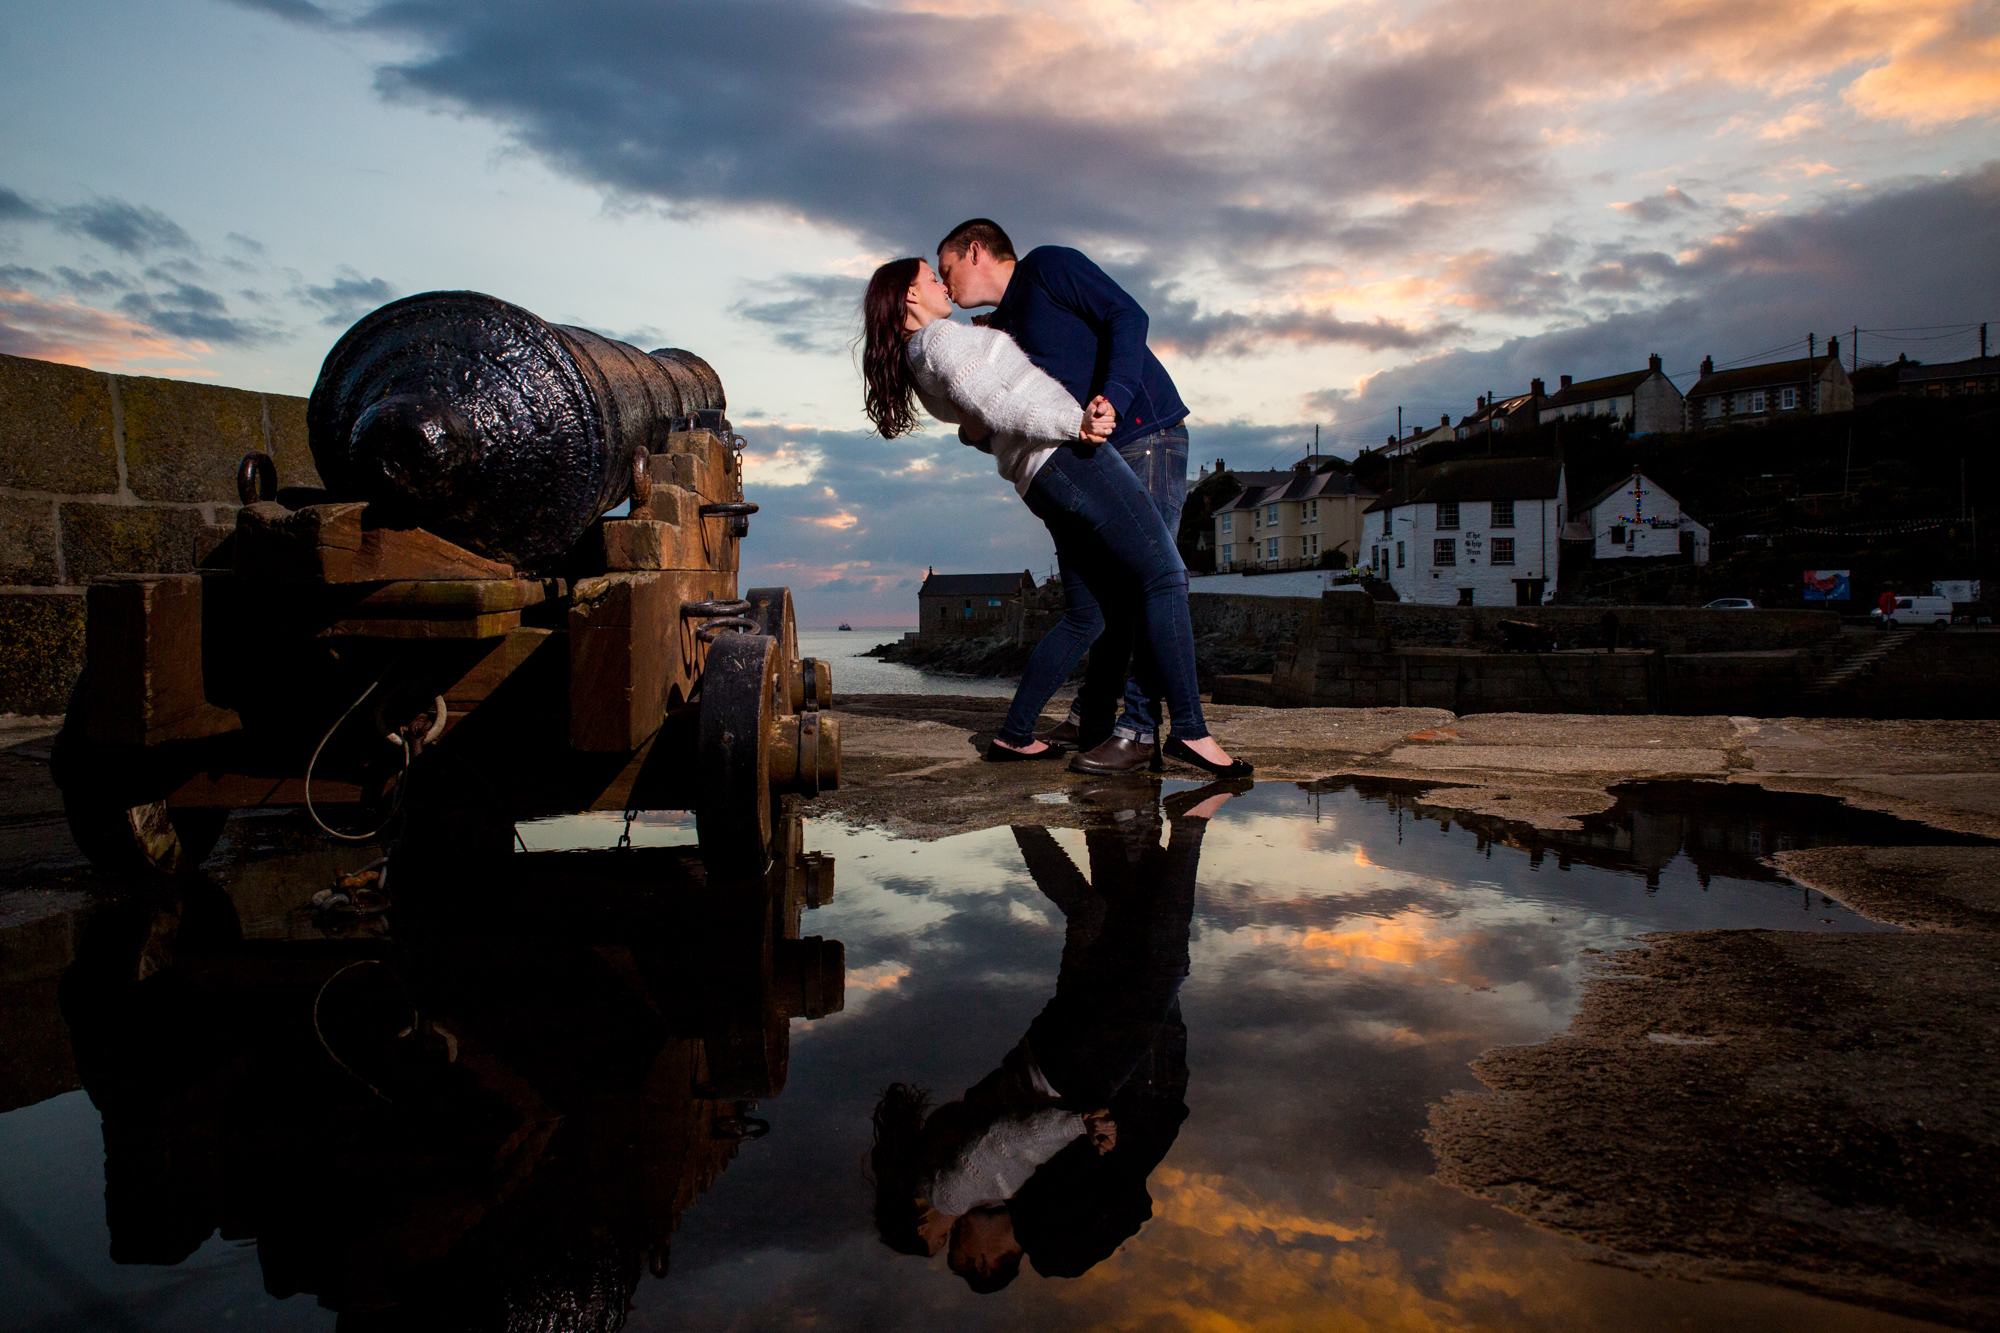 porthleven wedding photographer at sunset